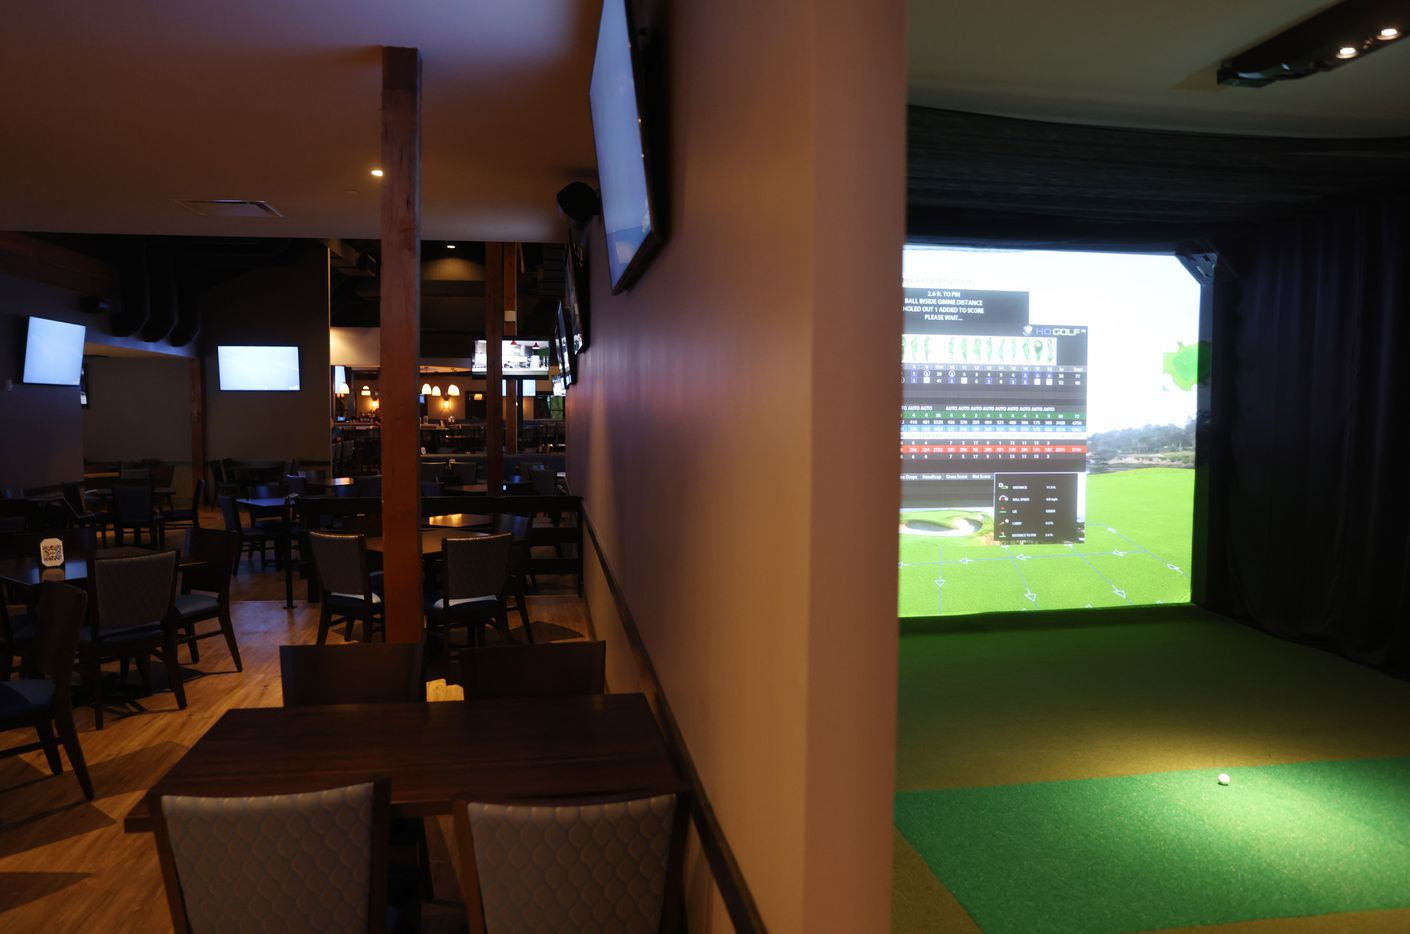 One of five golf simulators at Daylight Golf on Thursday, January 21, 2021in Grapevine, Texas.